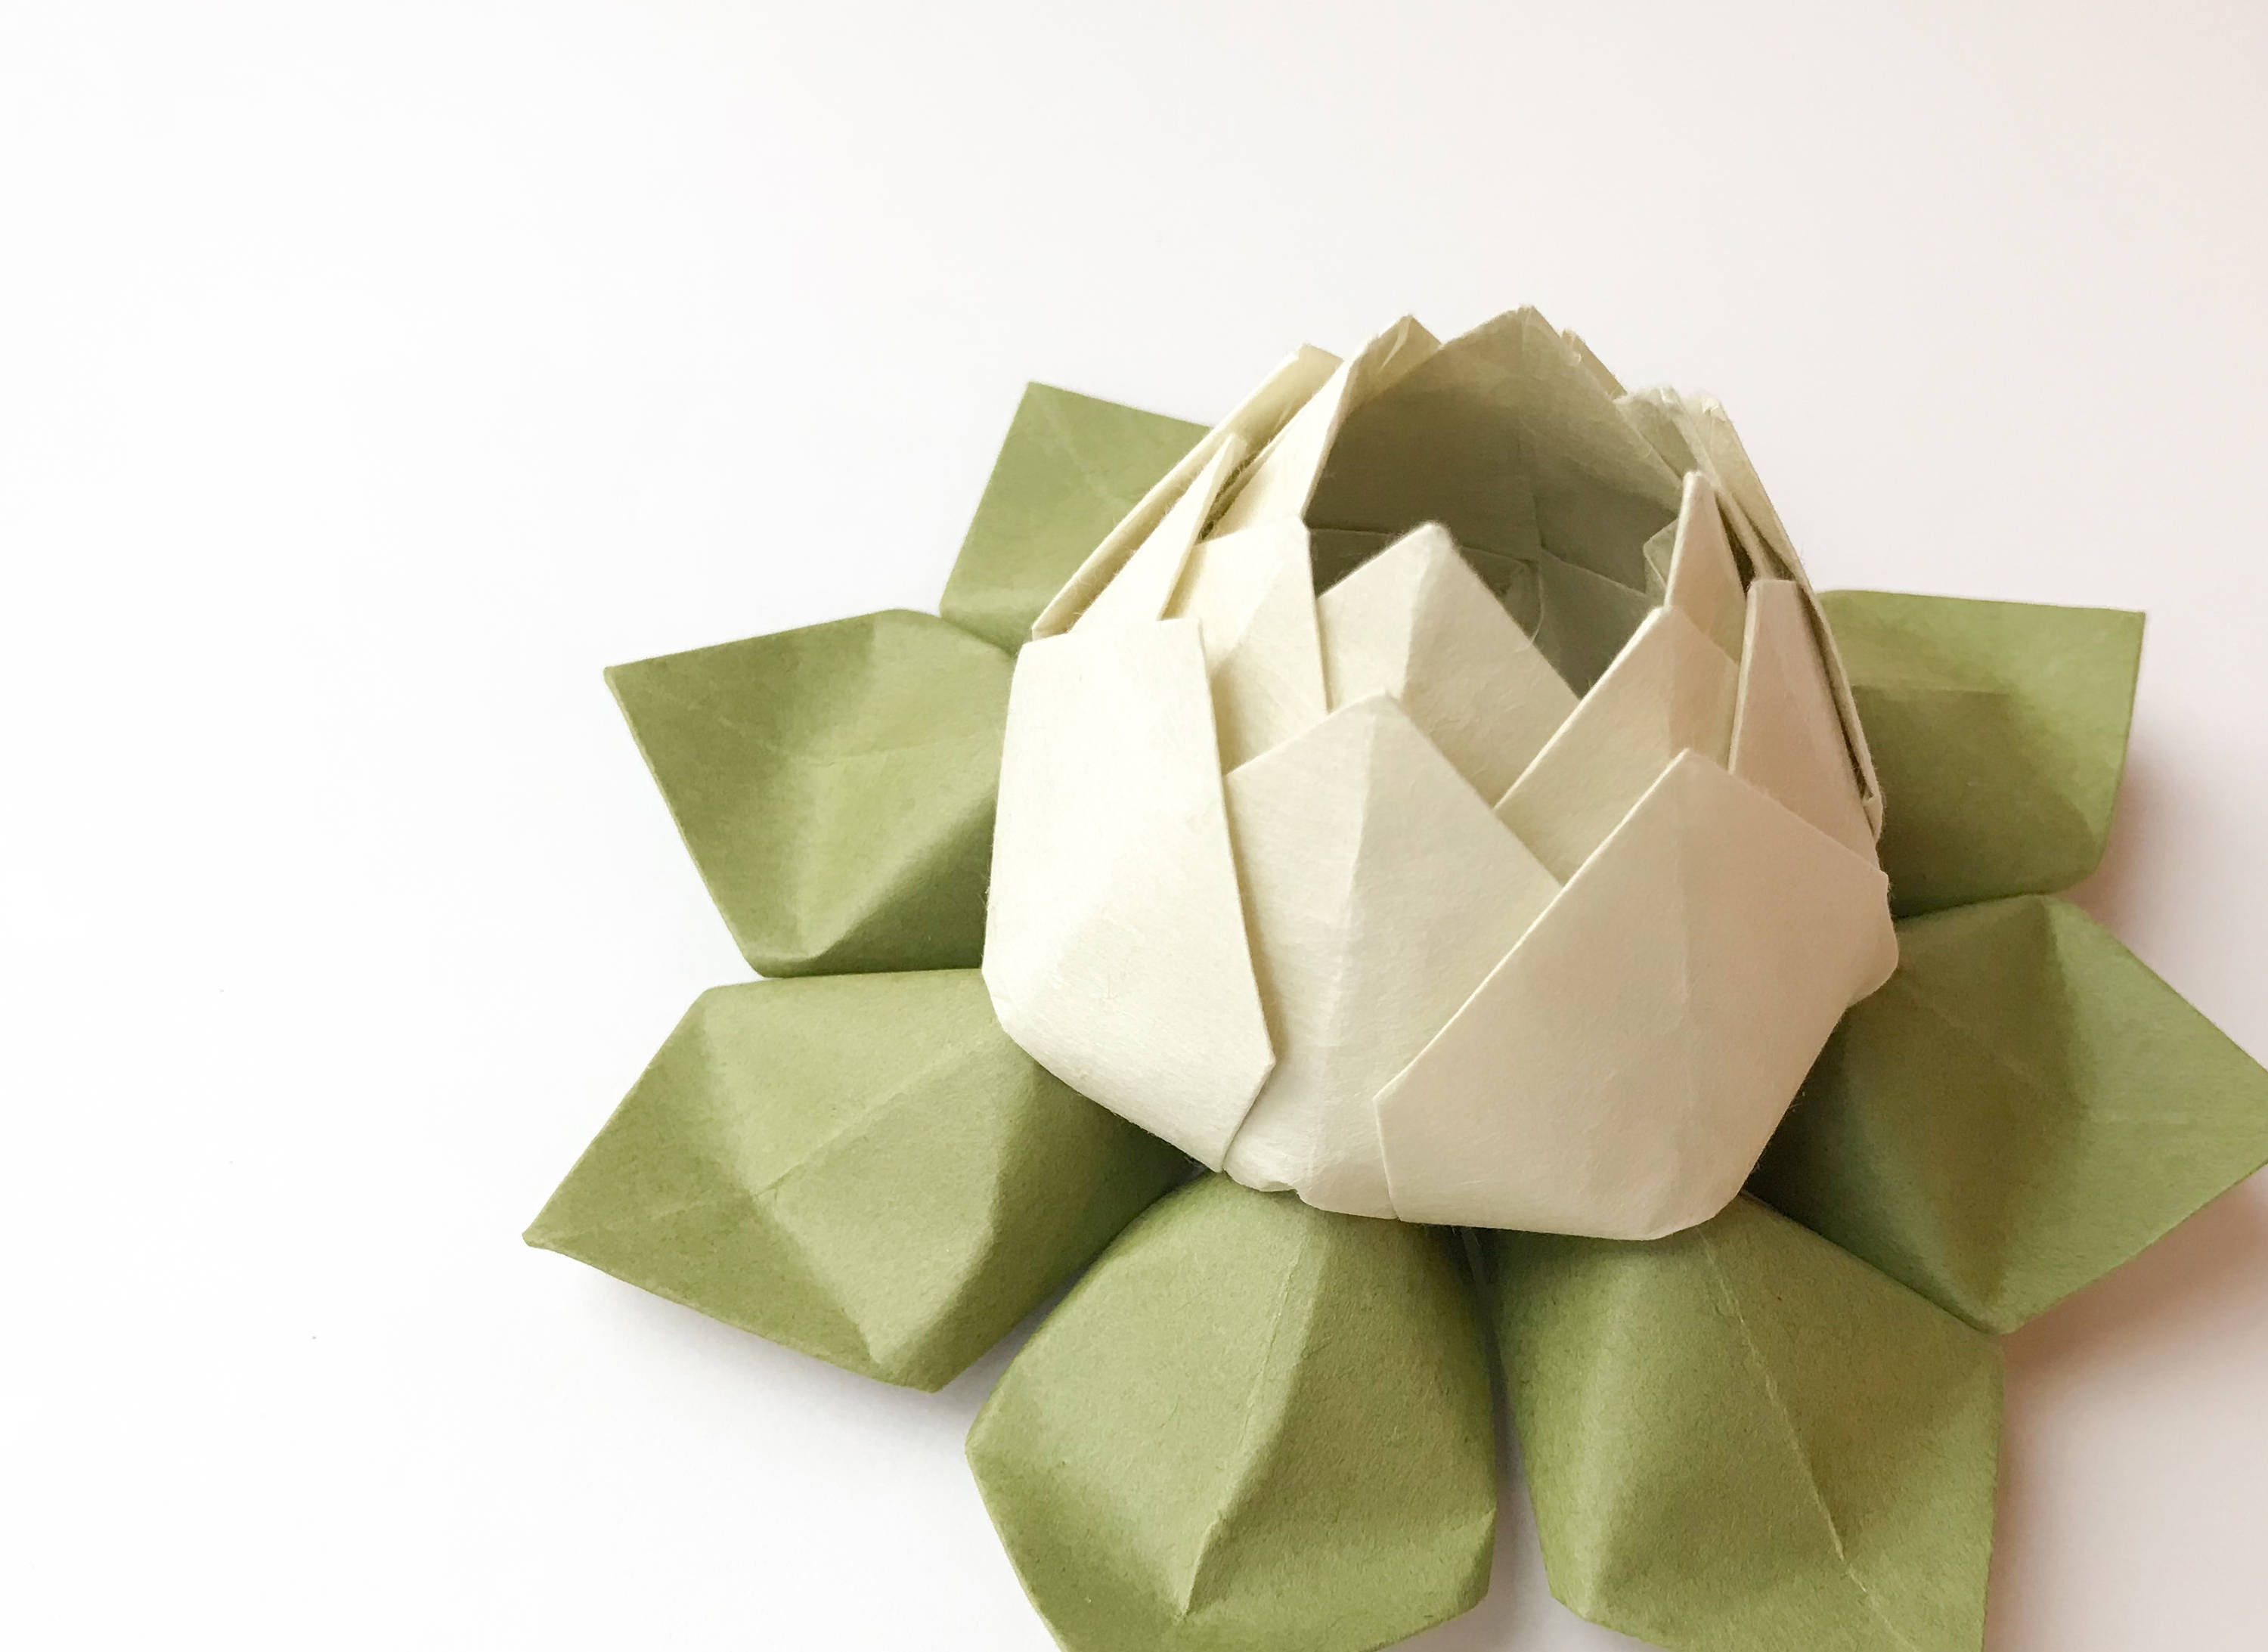 Origami Lotus Flower In Sage And Moss Green Paper Flower Etsy